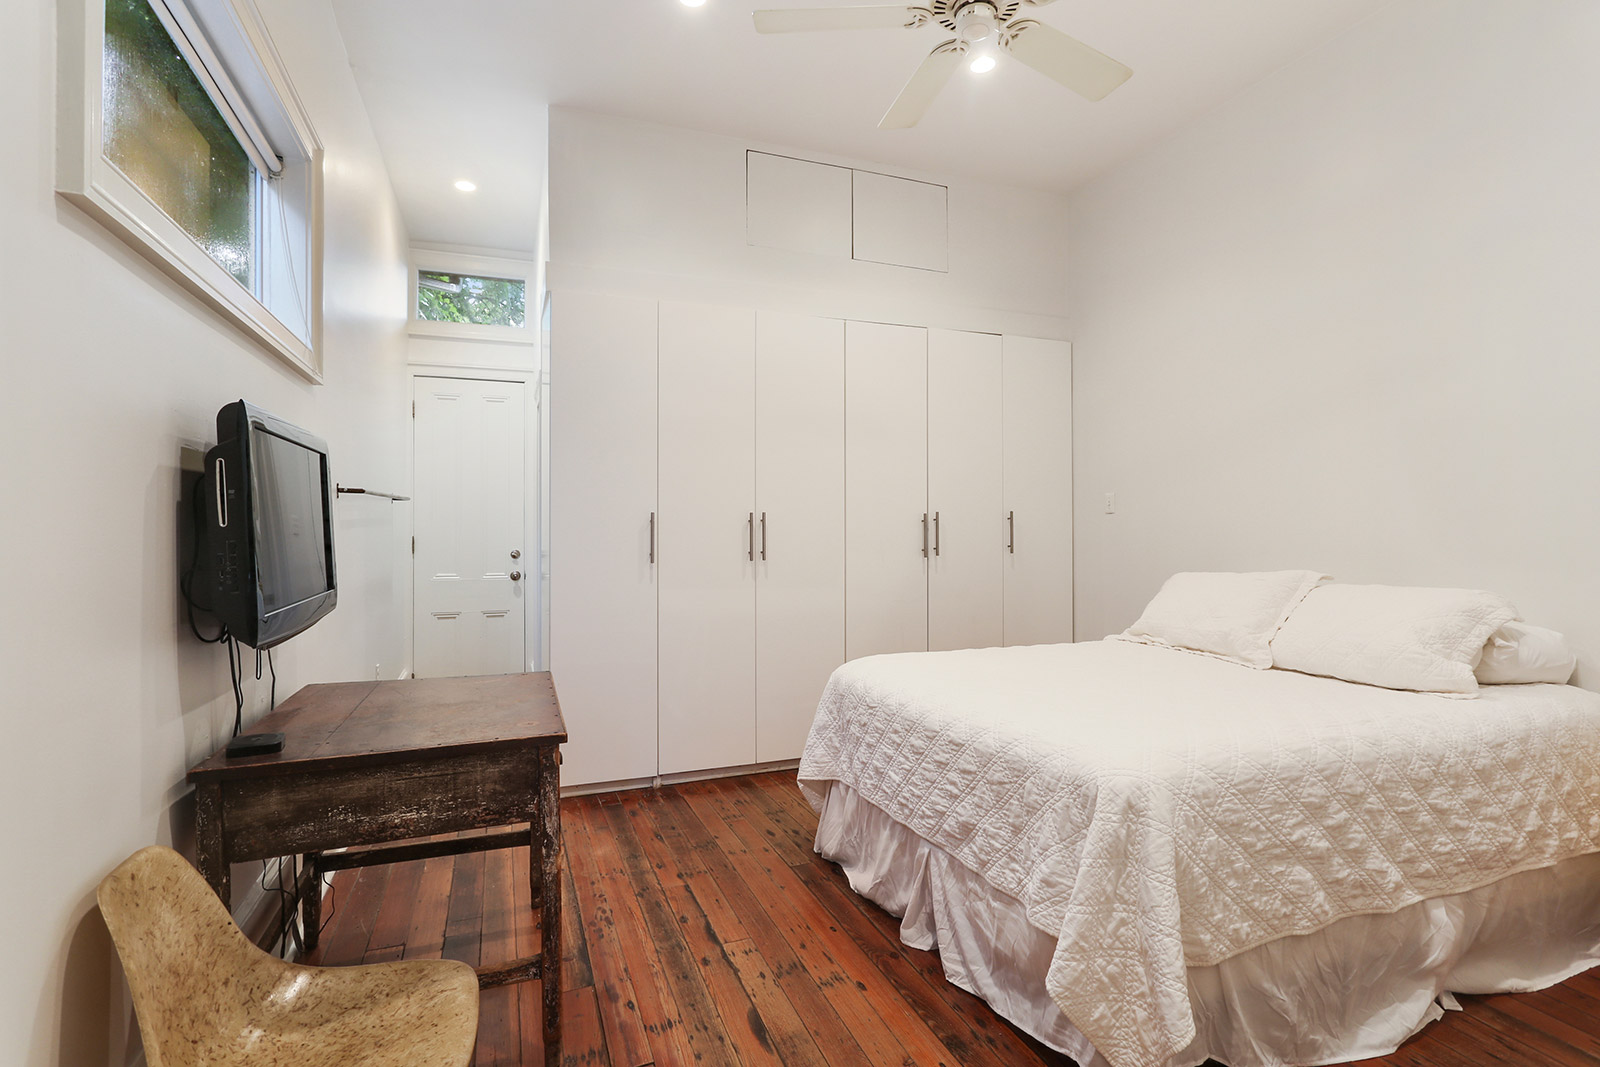 Uptown, Condo, 1 beds, 1.5 baths, $2800 per month New Orleans Rental - devie image_7